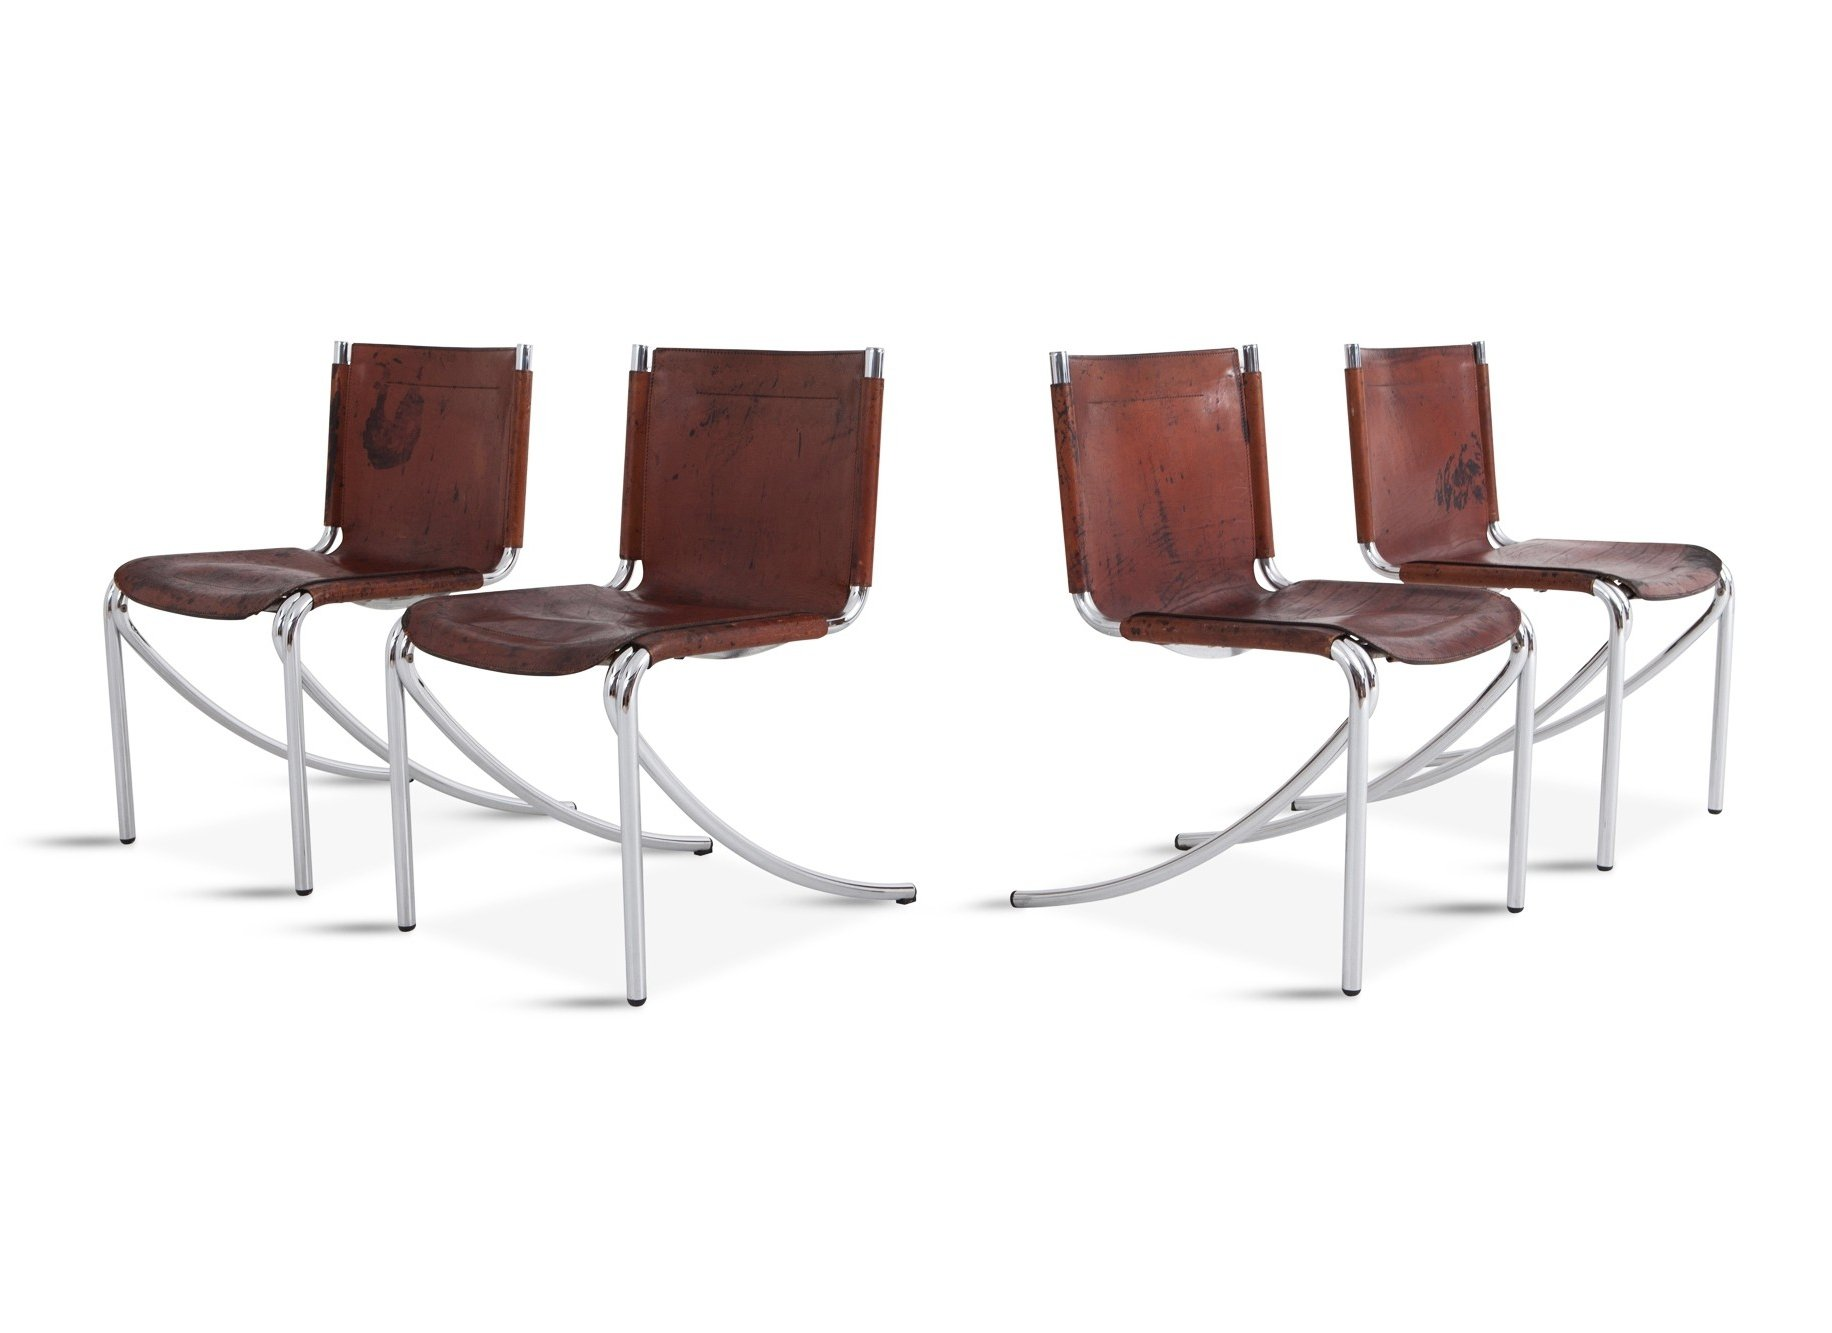 Marvelous Red Leather And Chrome Jot Dining Chairs By Giotto Stoppino For Acerbis 1970S Camellatalisay Diy Chair Ideas Camellatalisaycom